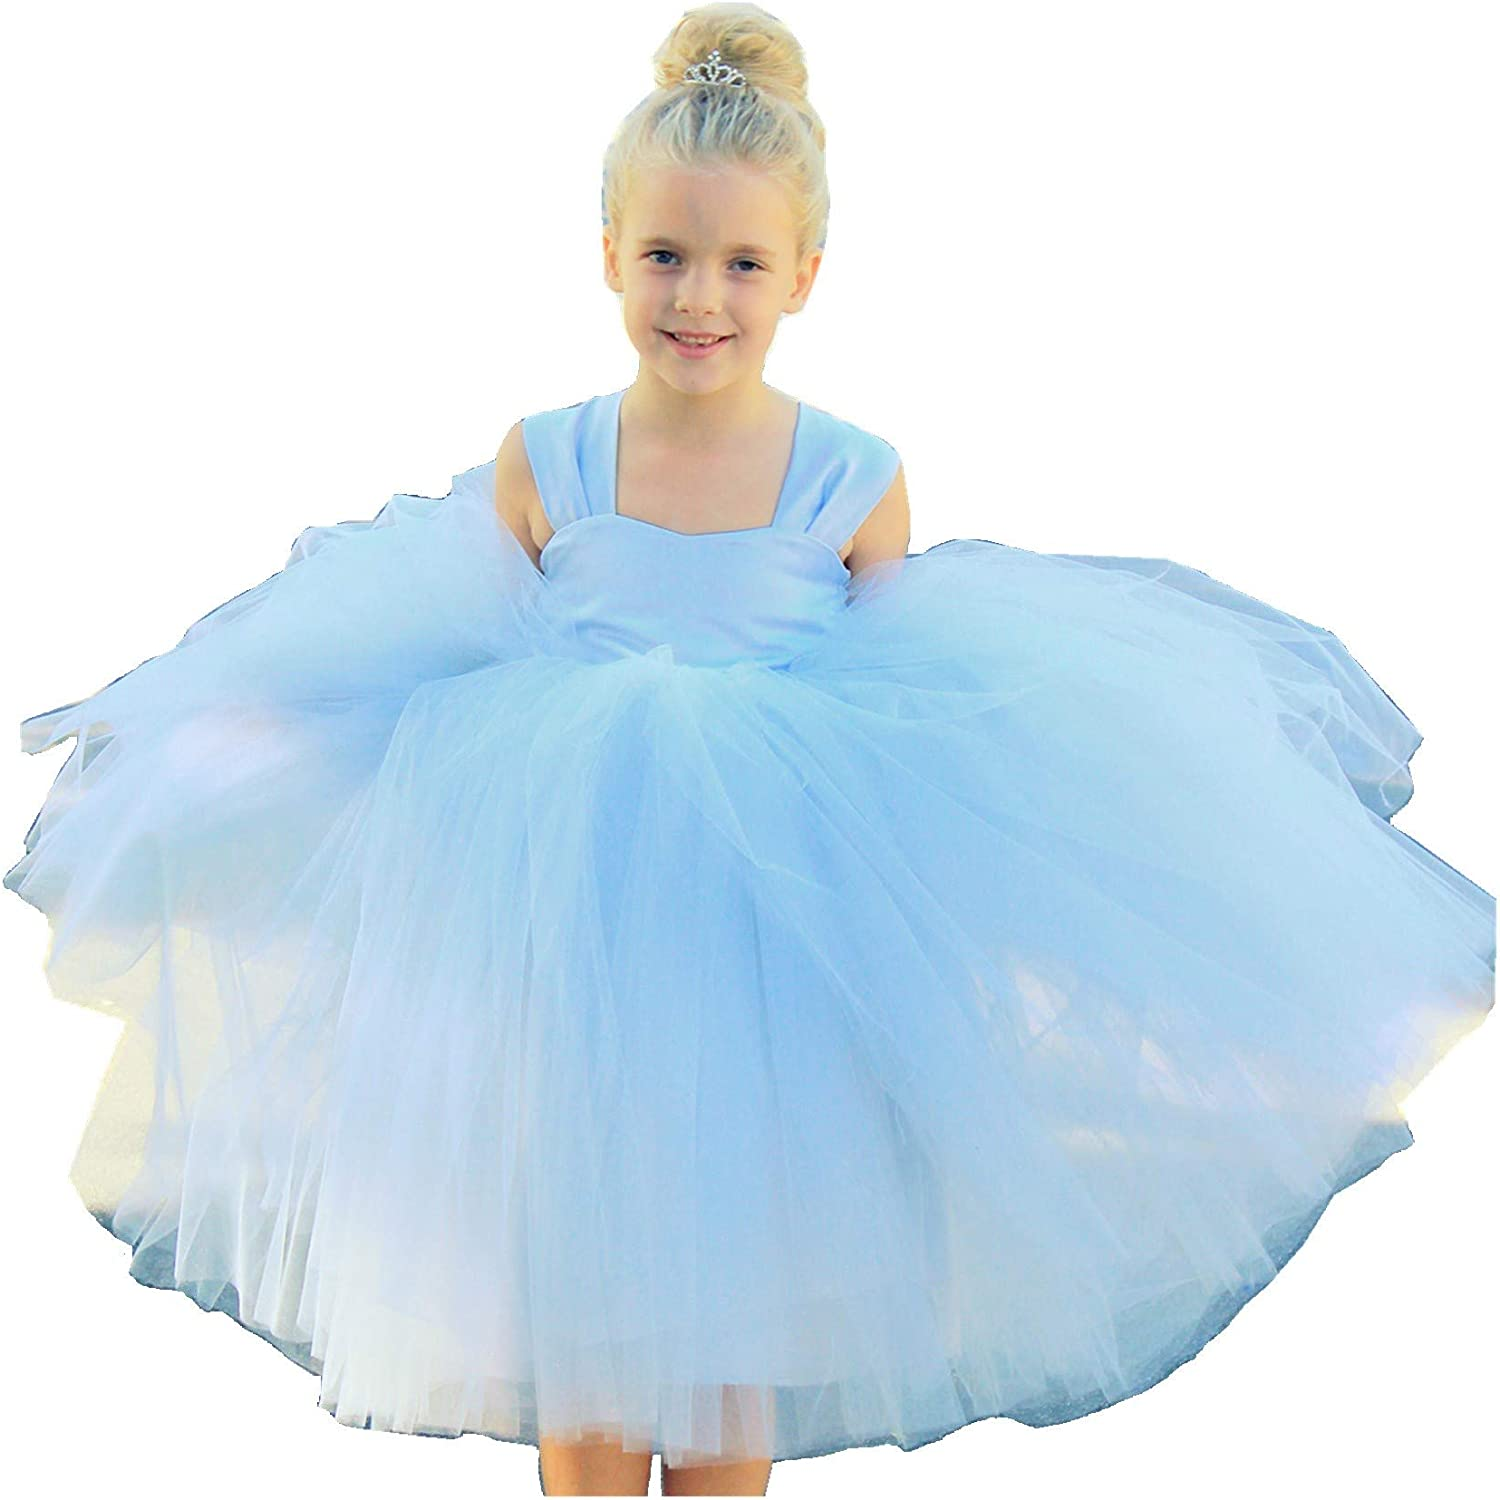 Sweetheart Neck Top Tutu Pageant Girl Dress Special Events Receptions 201